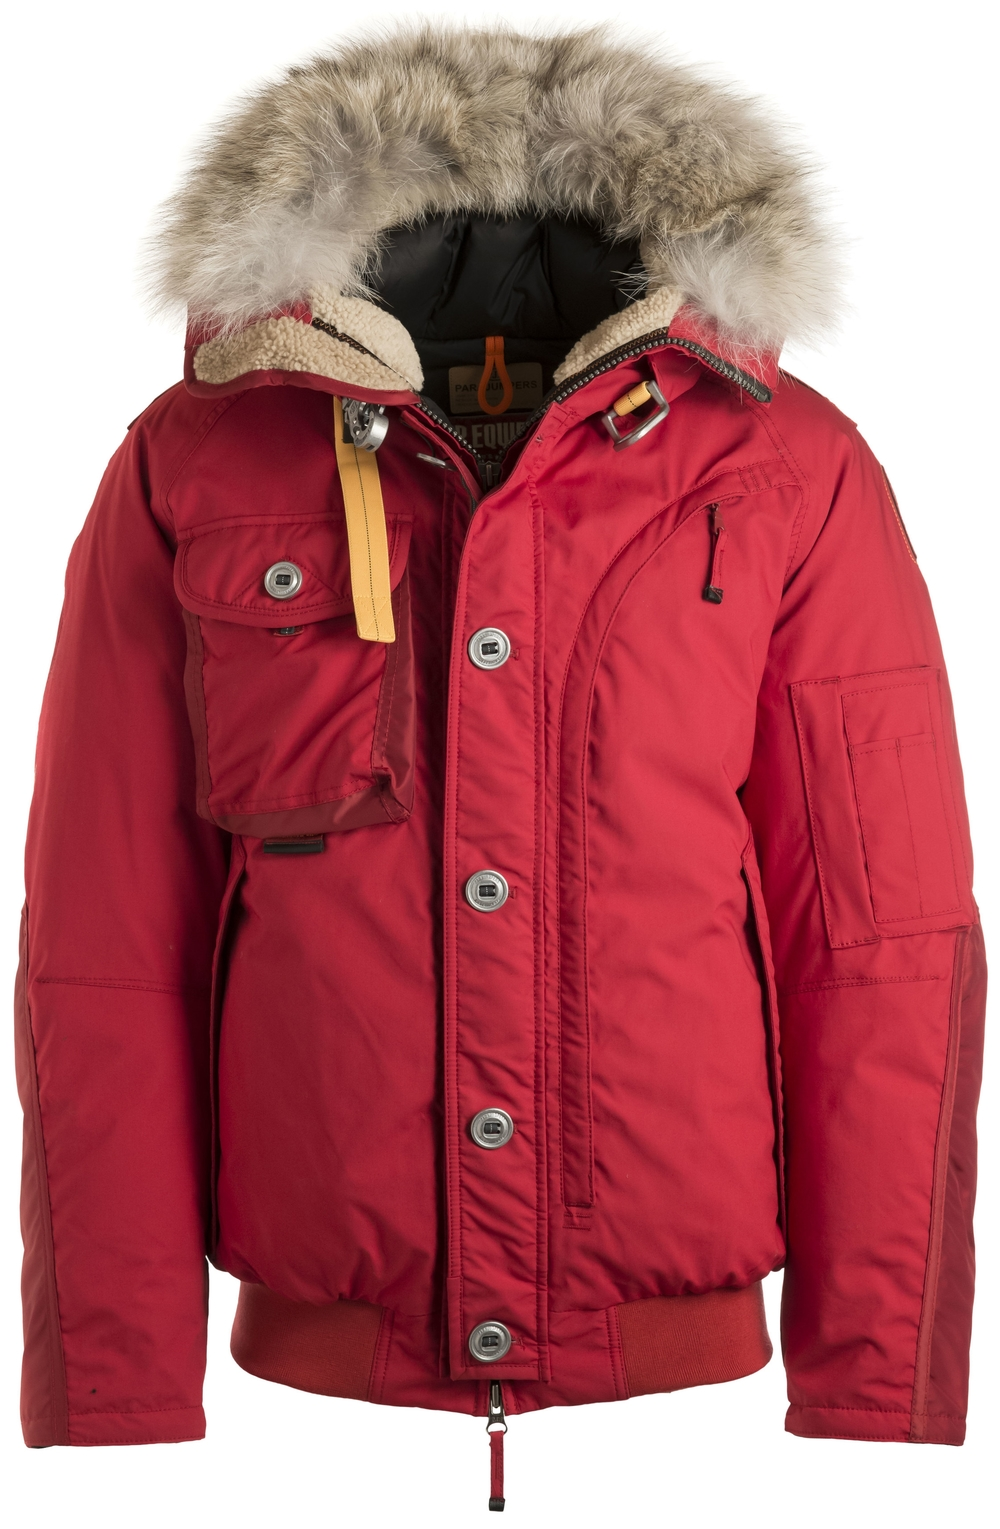 ParaJumpers Red Tribe Coat, $1,495